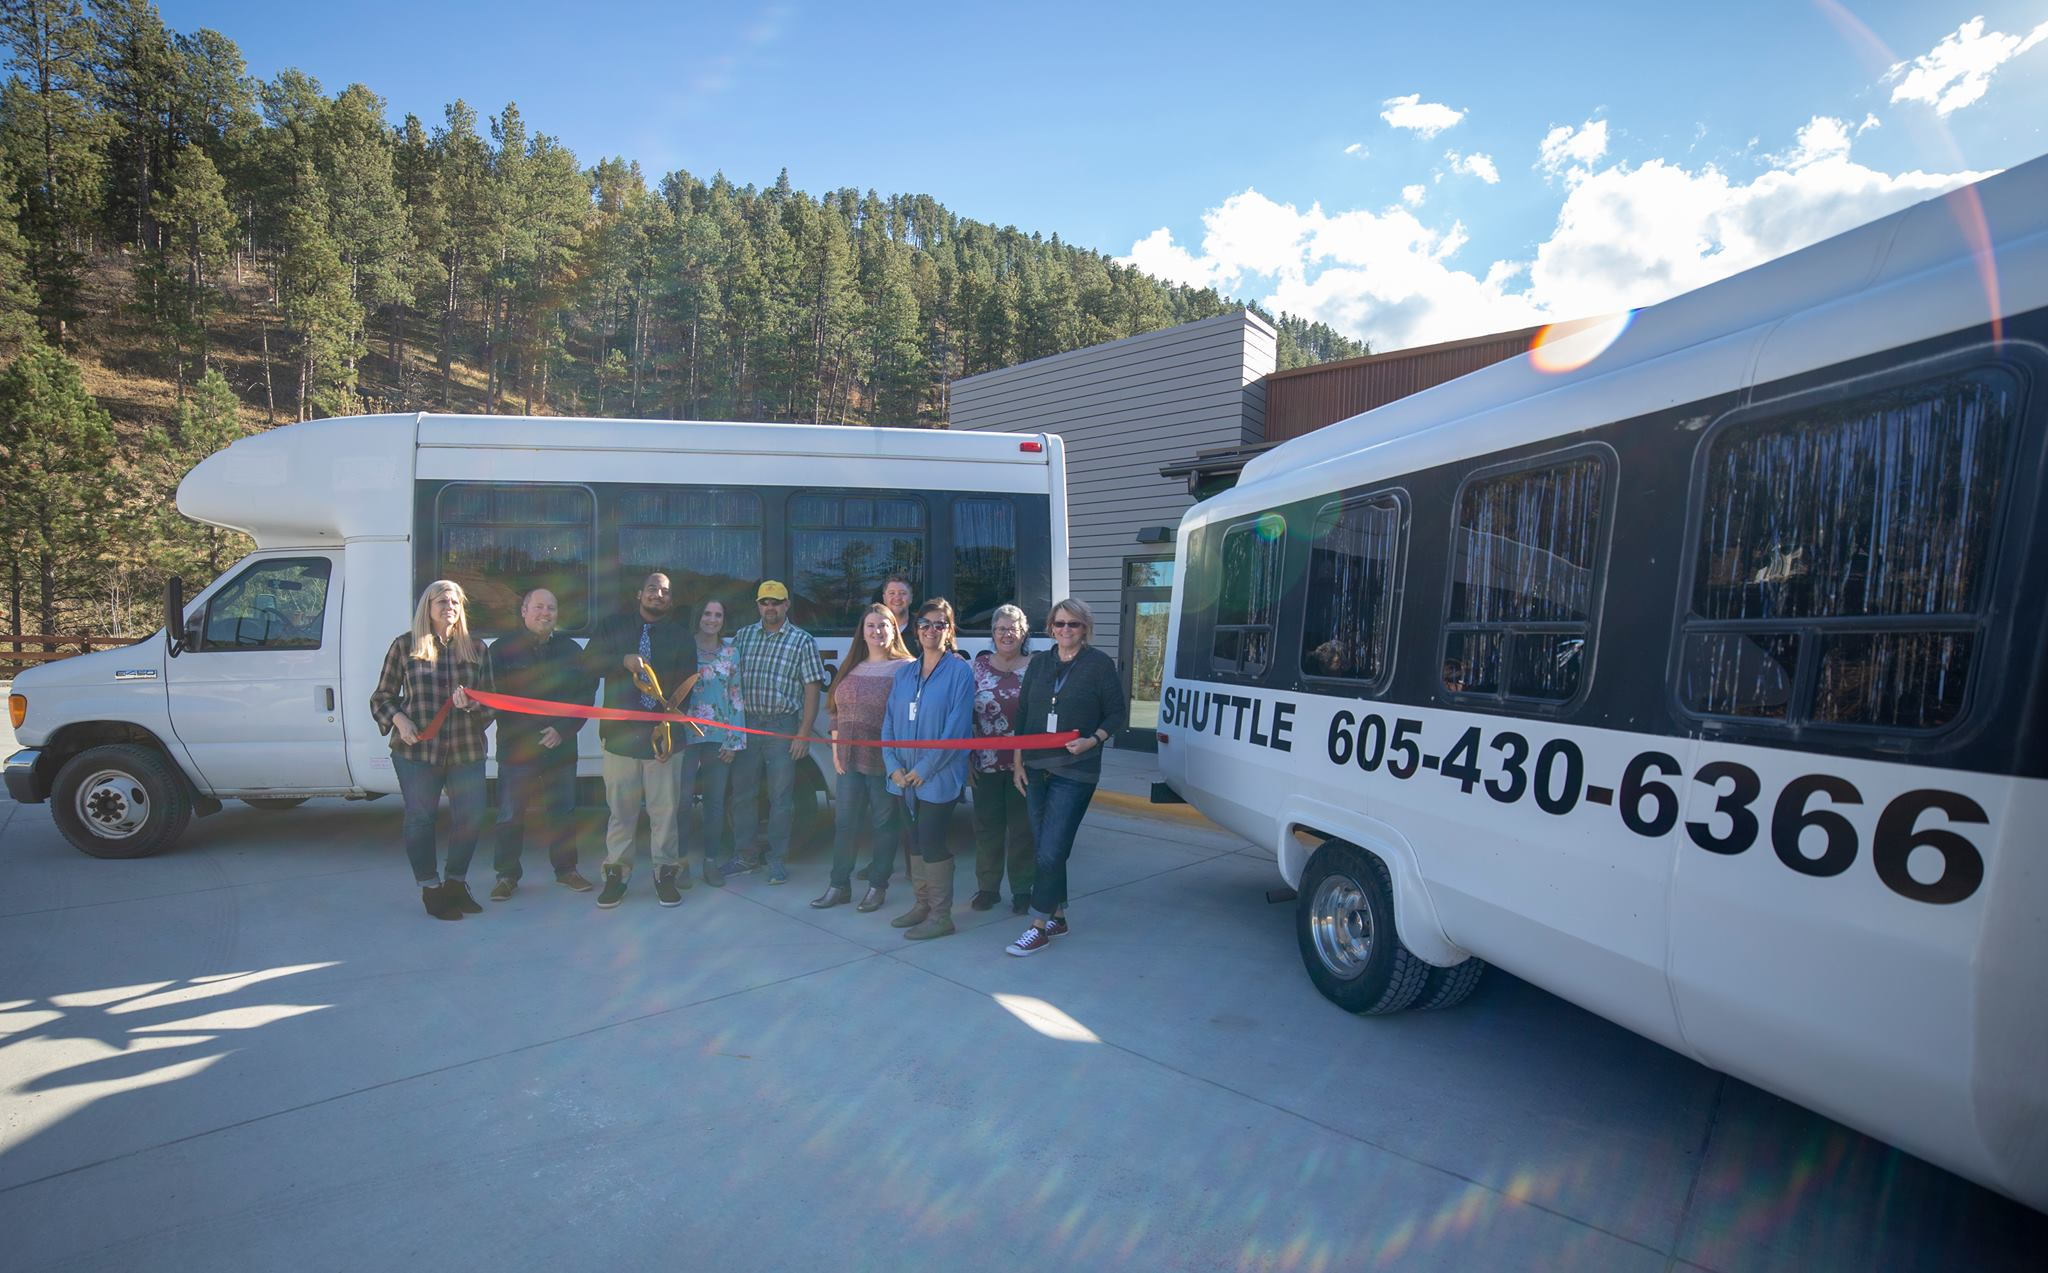 A group of ten people standing proudly in front of one of the shuttles during the ribbon cutting ceremony, including the driver - Jordan, and the owner - Stacey Phillips.